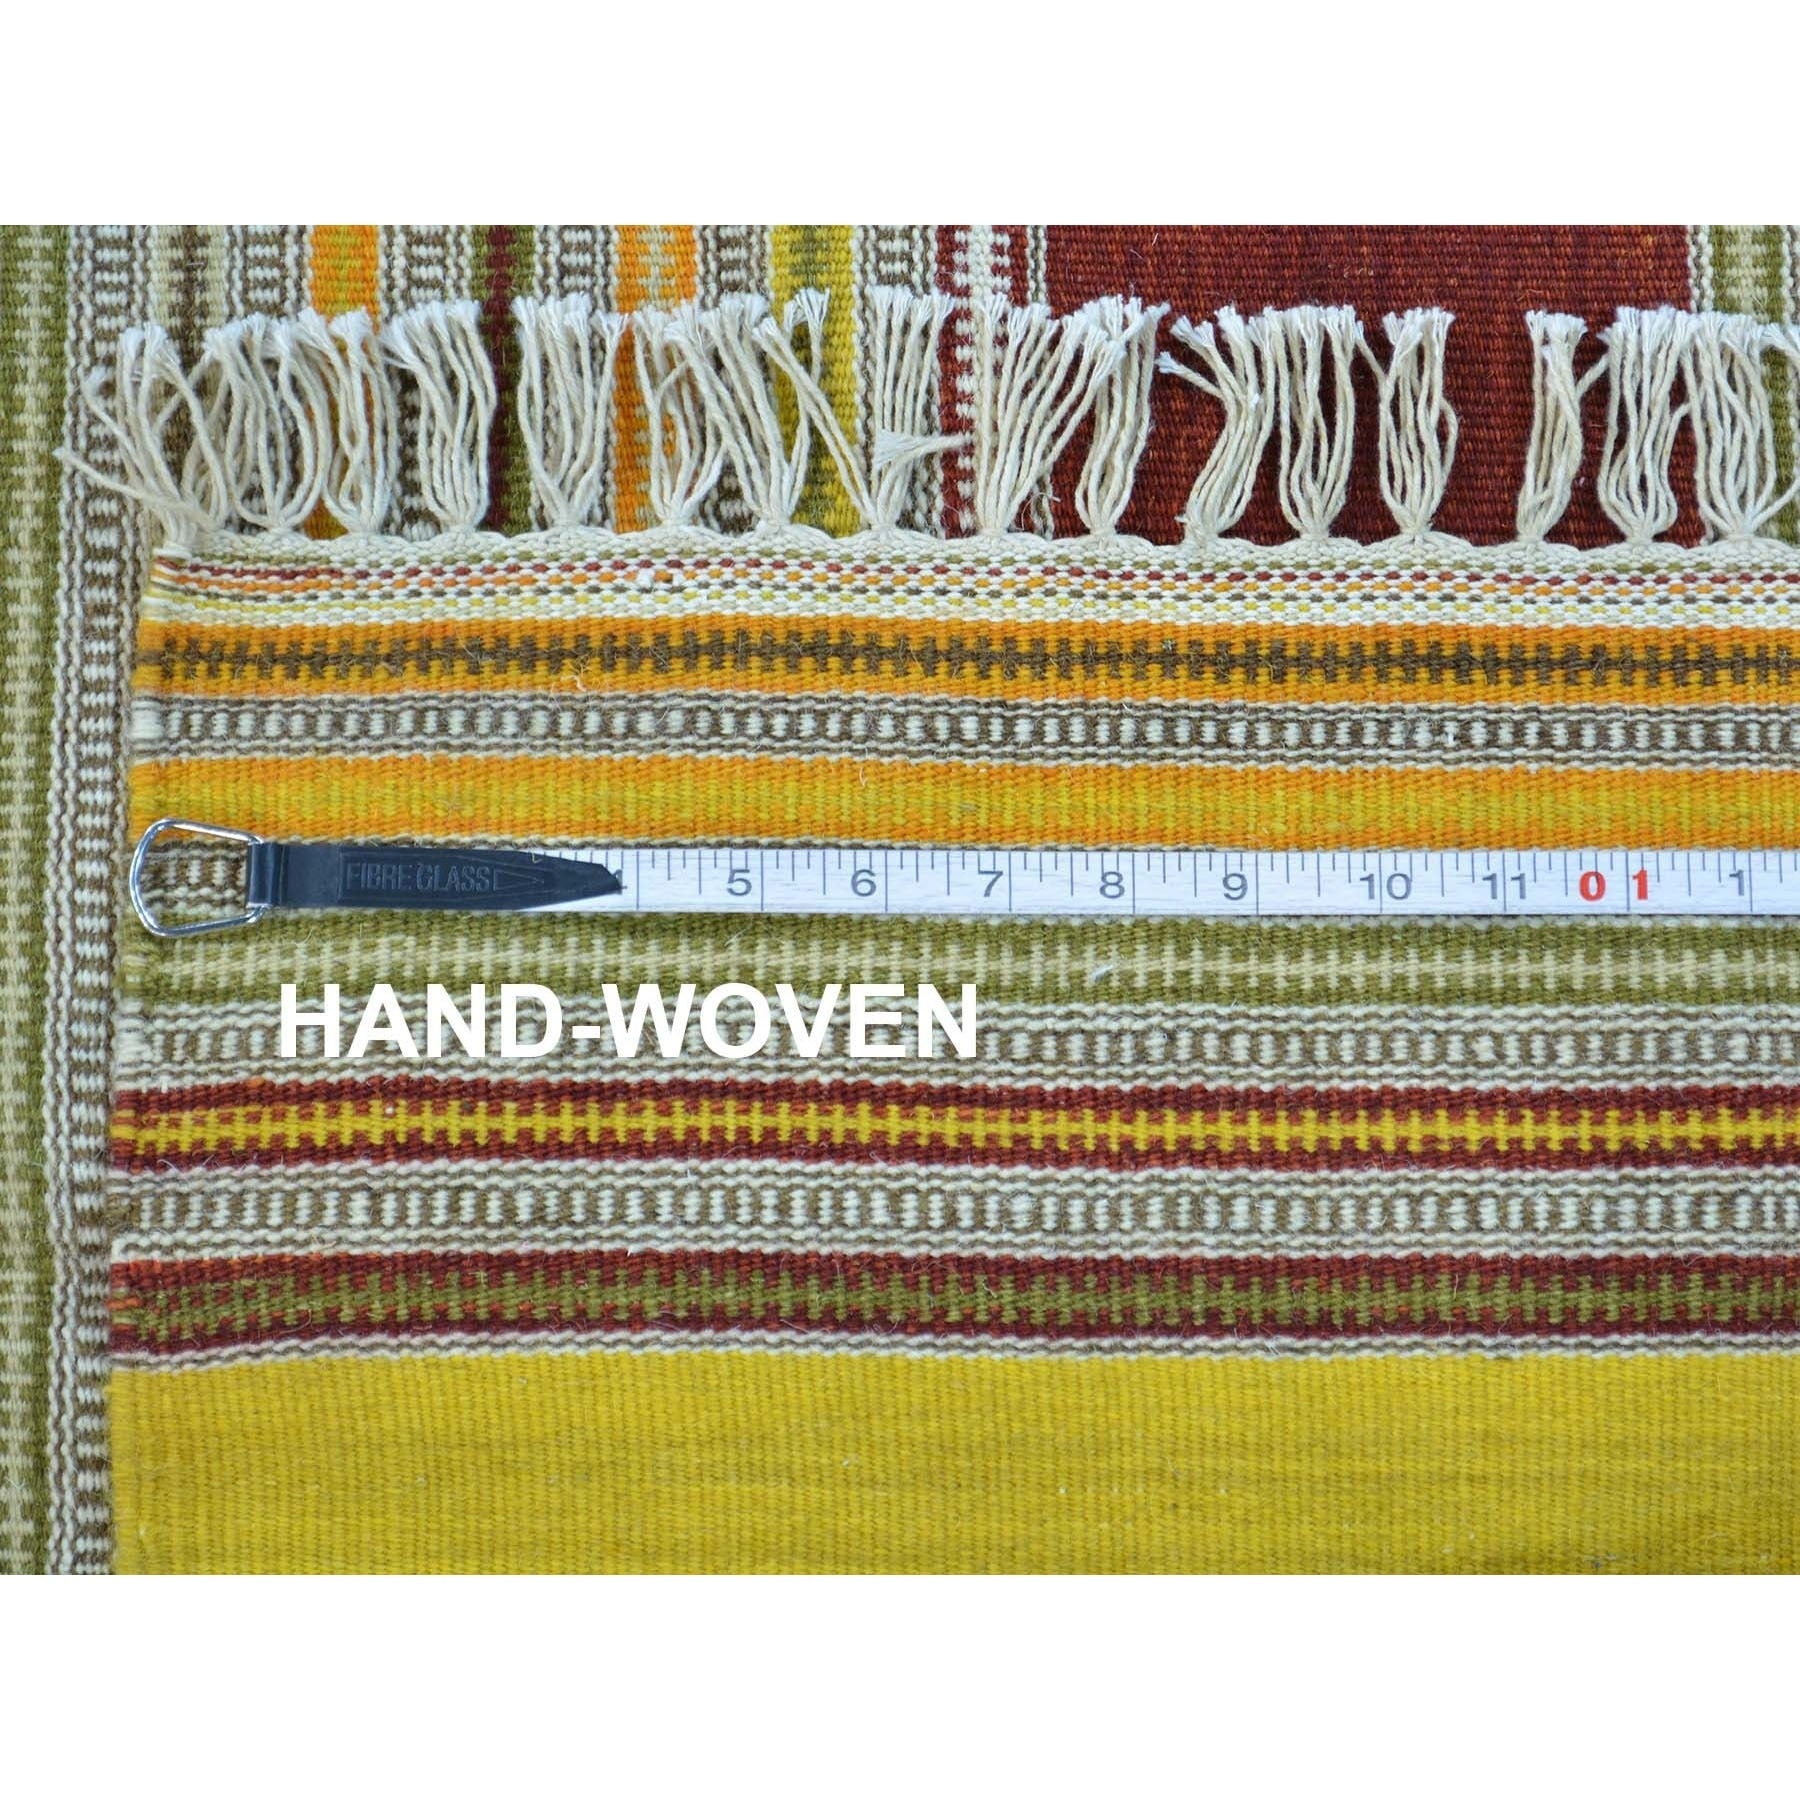 "Handmade Flat Weave Rectangle Rug > Design# SH30039 > Size: 6'-1"" x 9'-4"" [ONLINE ONLY]"